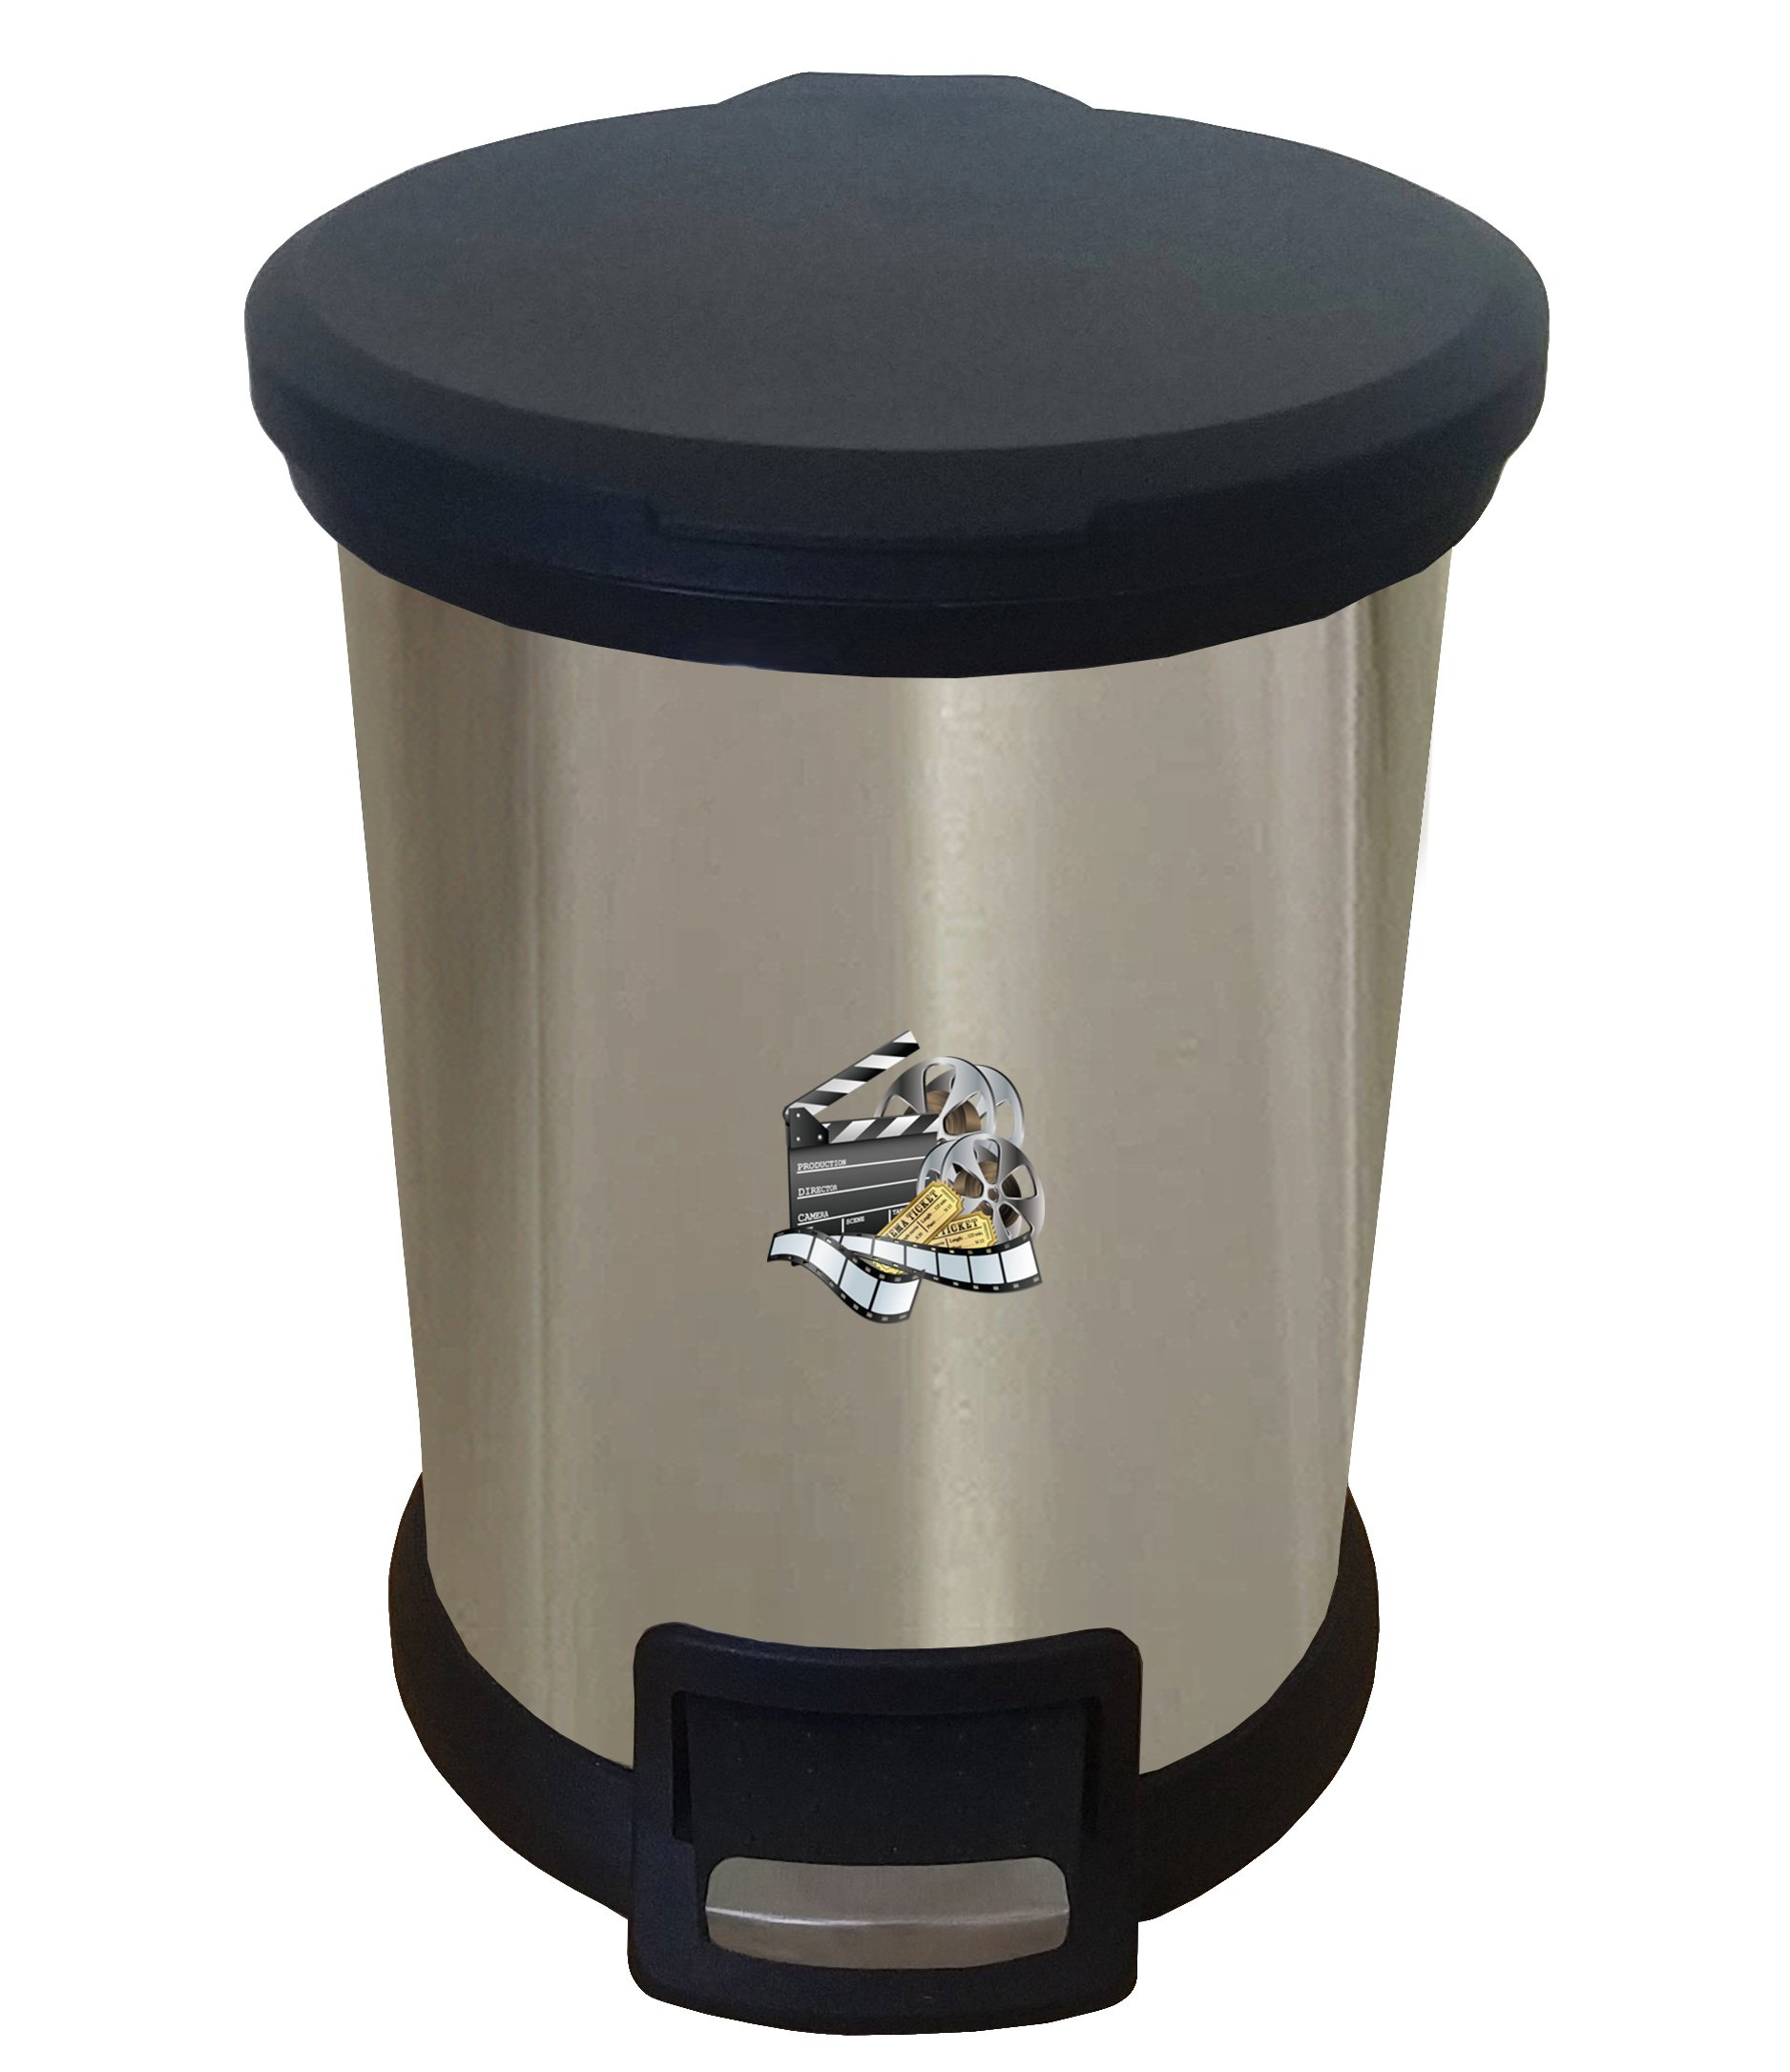 The Furniture Cove New 1.3 Gallon Round Stainless Steel Step Trash Can Waste Basket Featuring Your Choice of a Novelty Themed Logo! (Movie Reel)